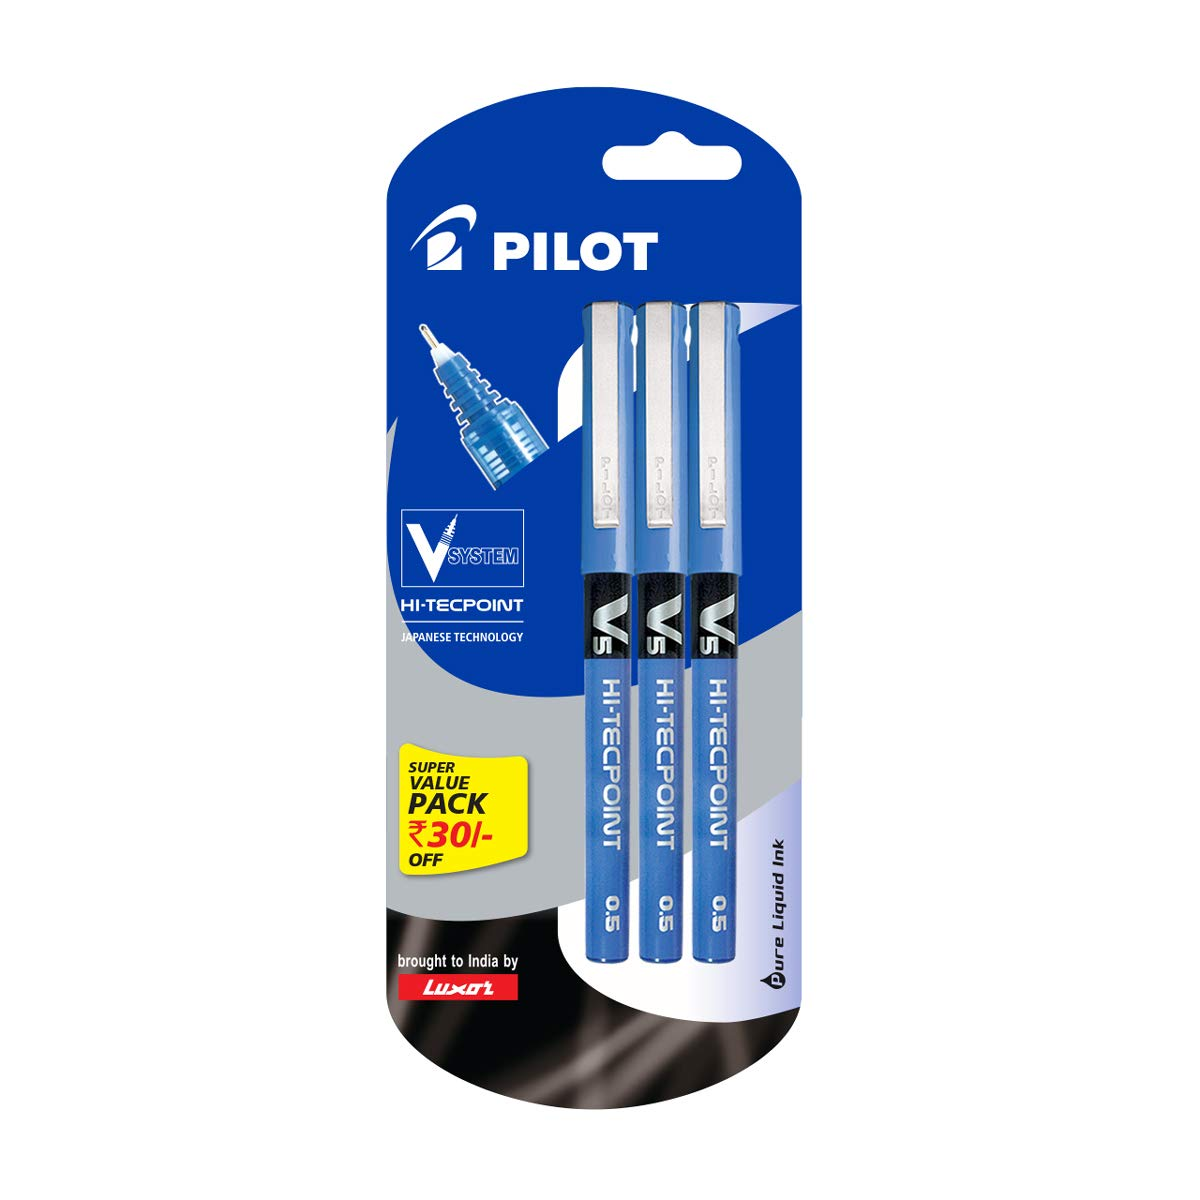 Pilot V5 Pen Liquid Ink Roller Ball Pen - Pack of 3, Blue product image